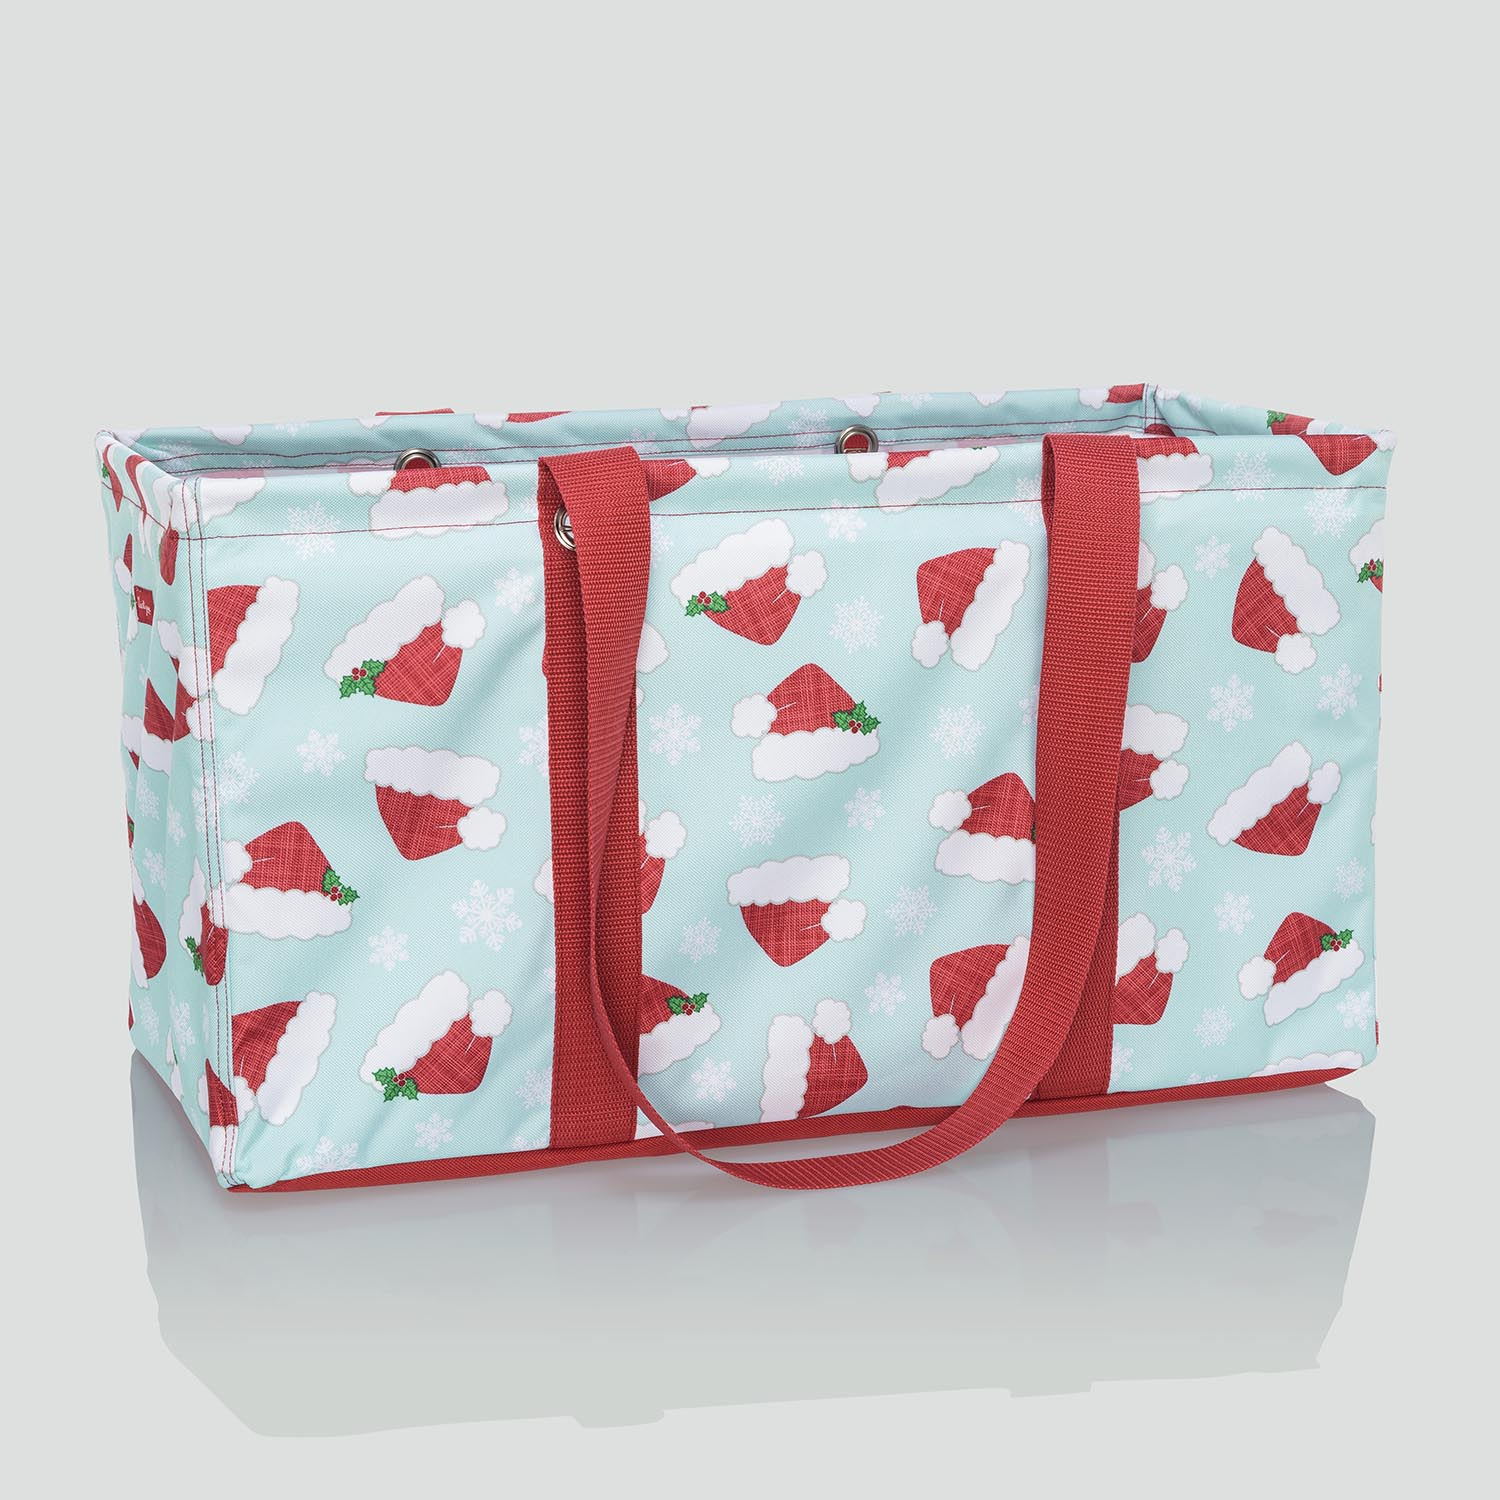 Large Utility Tote | Thirty-One Gifts LLC